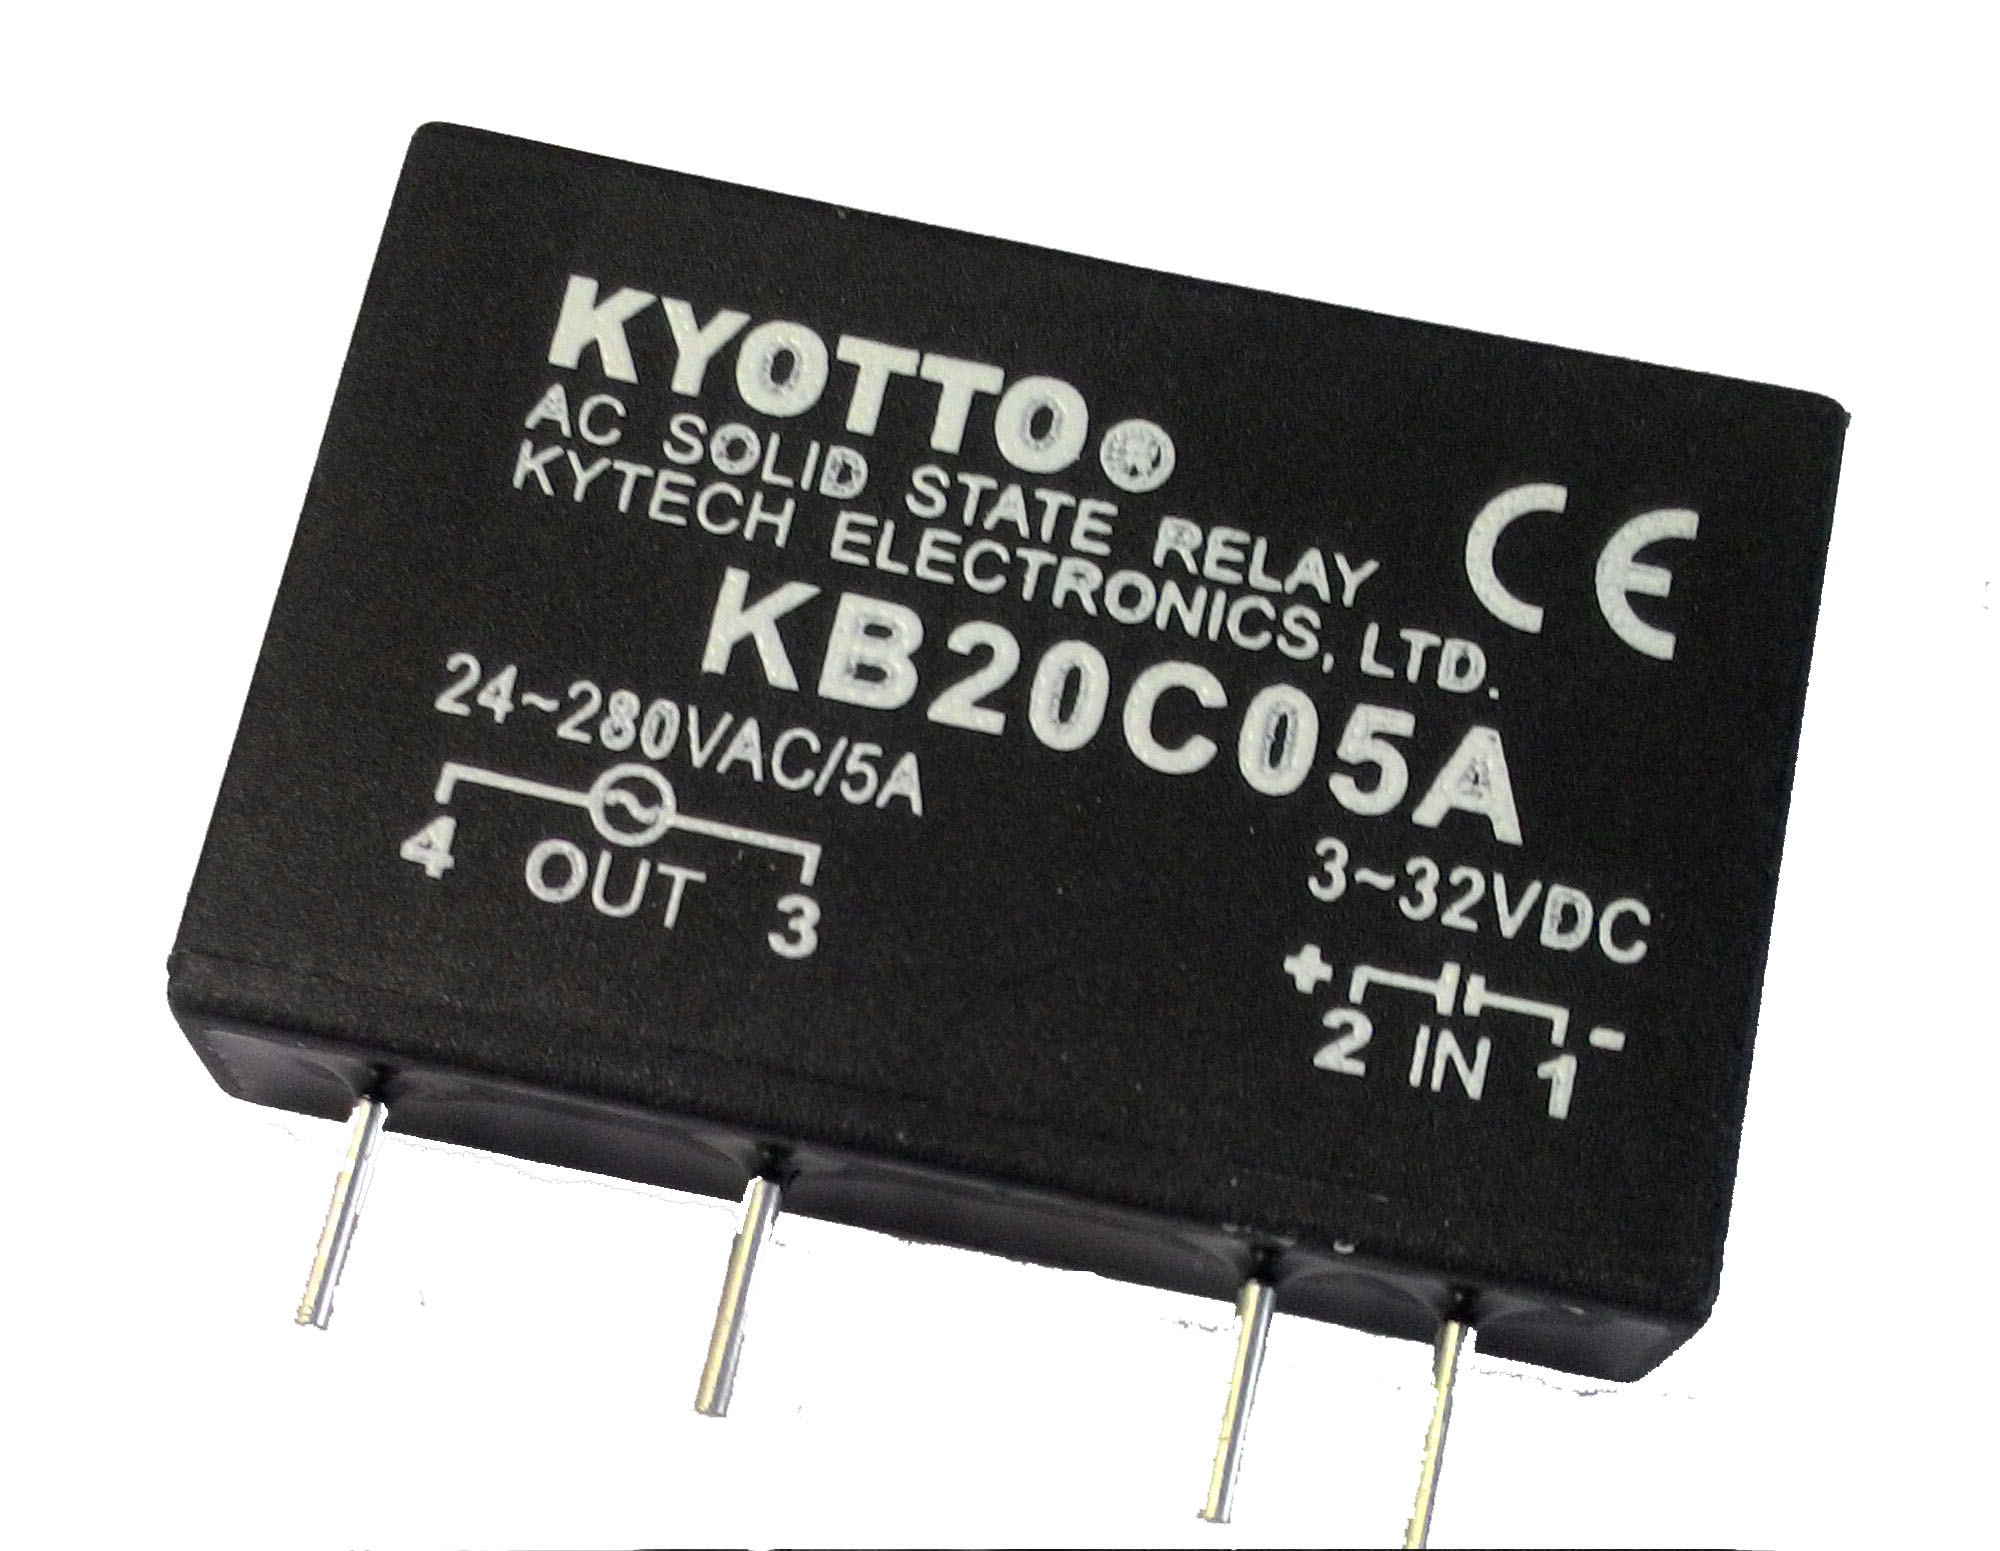 Kytech Electronics Ltd Solidstaterelay Schematic Solid State Relay Ssr Ka Series Dc Ac280vac